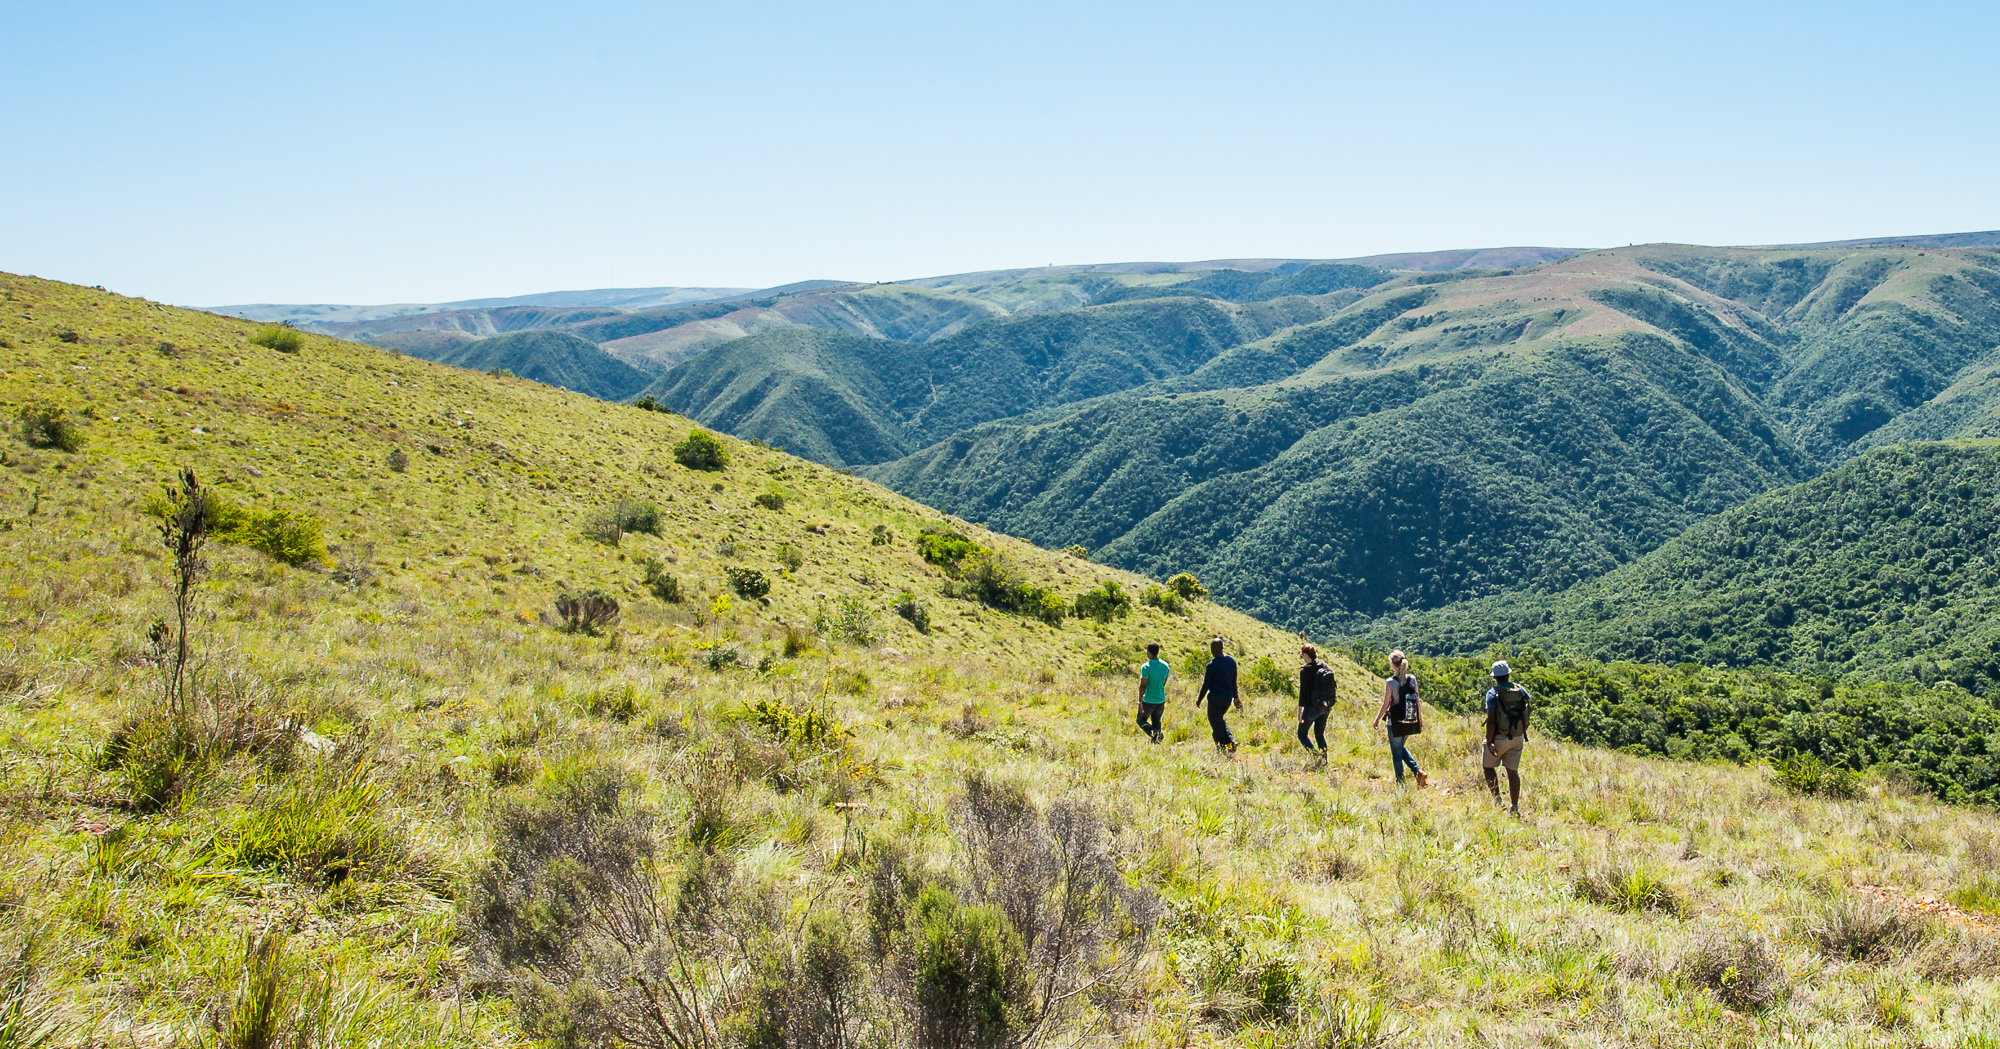 Explore Addo's Zuurberg section on foot